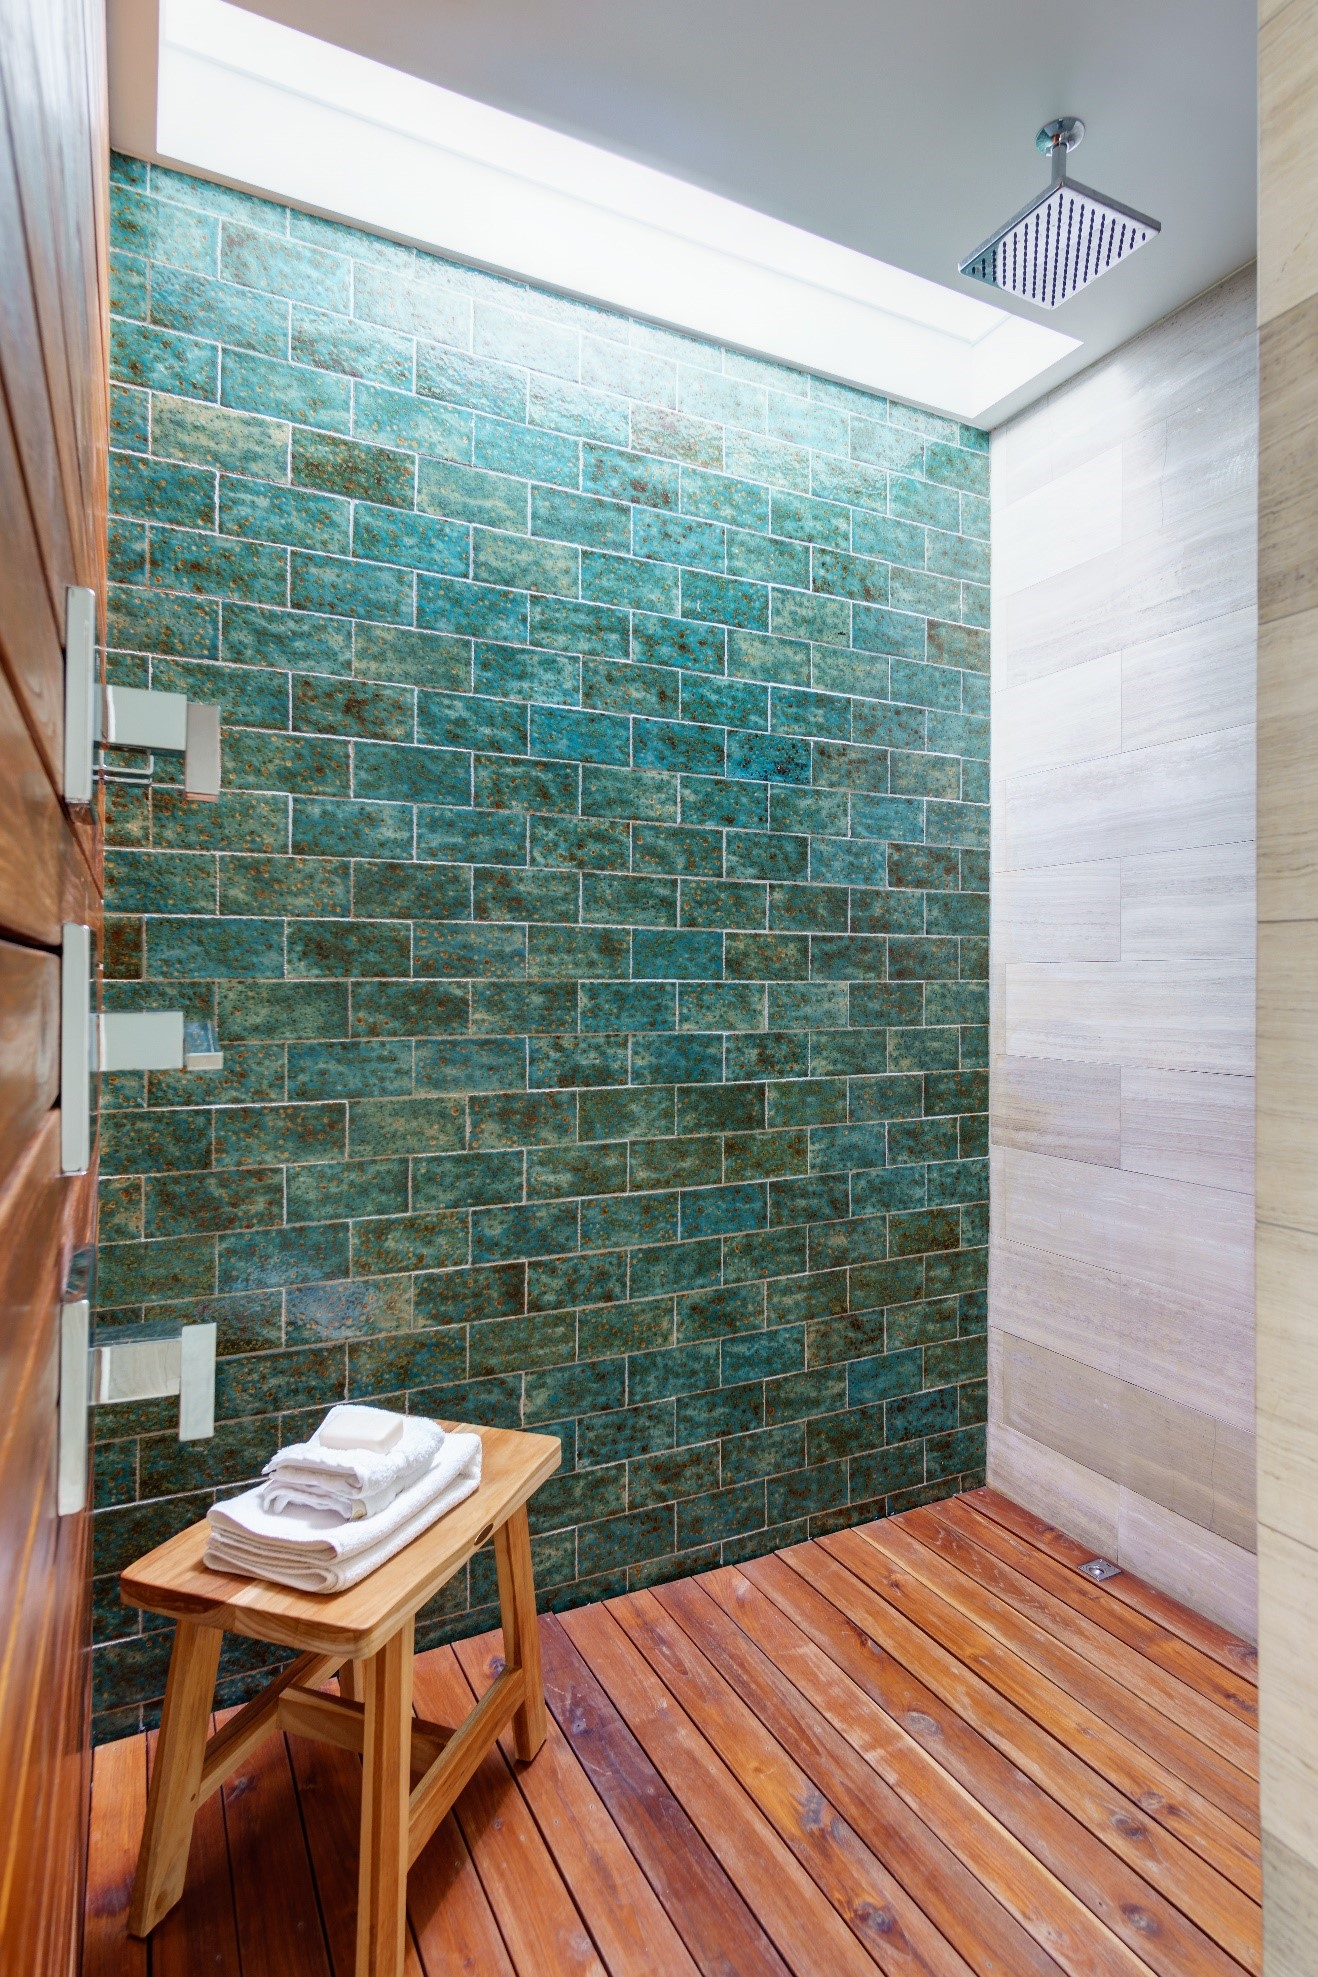 Natural lighting in renovated shower.